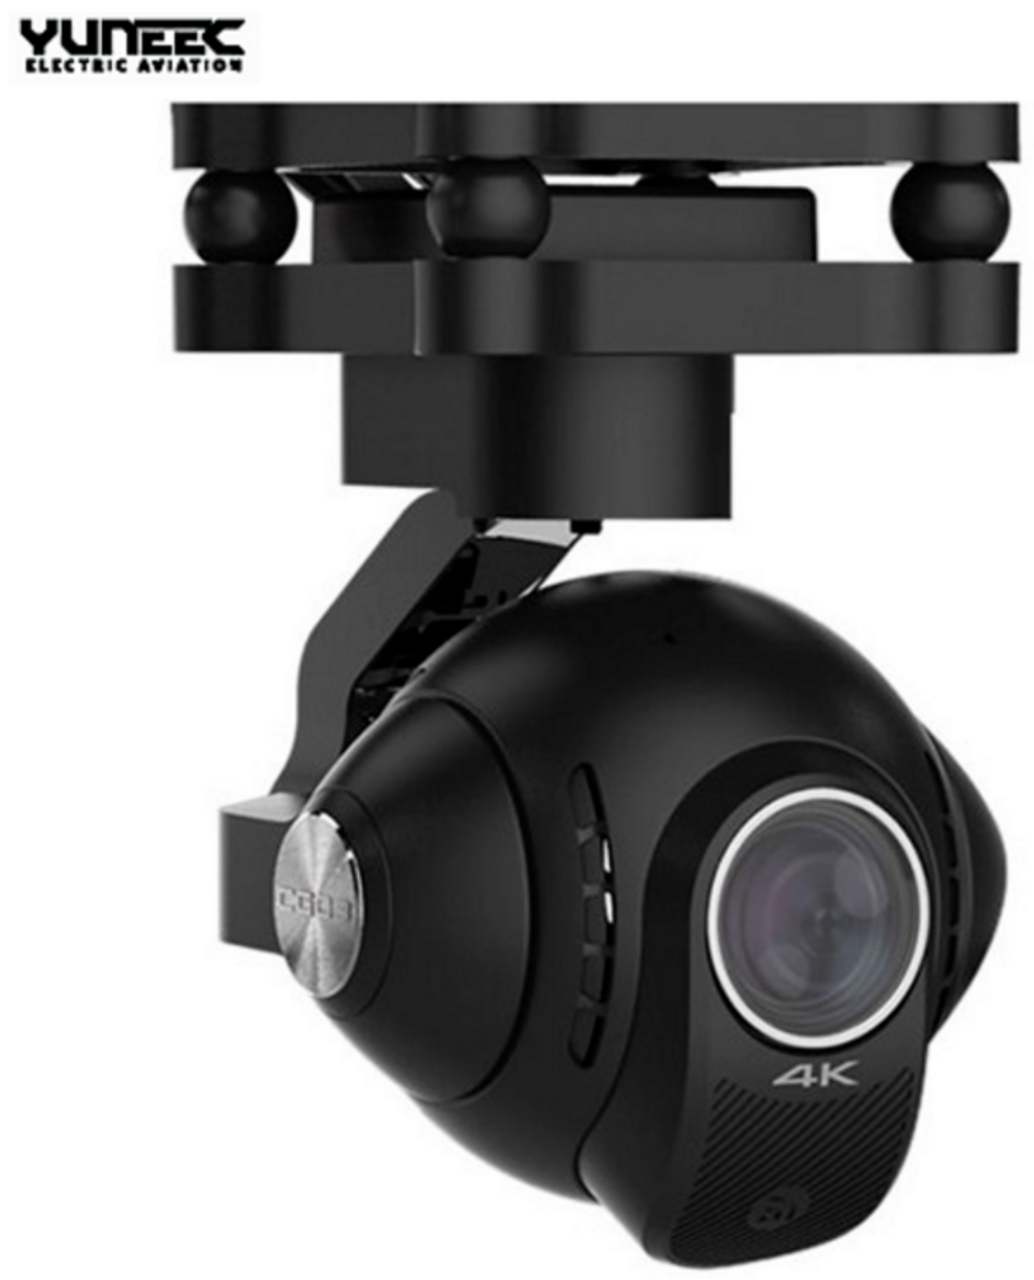 Yuneec YUNCG03US CG03 4K 3-axis Gimbal Camera w/ 5.8GHz Digital Video Downlink US